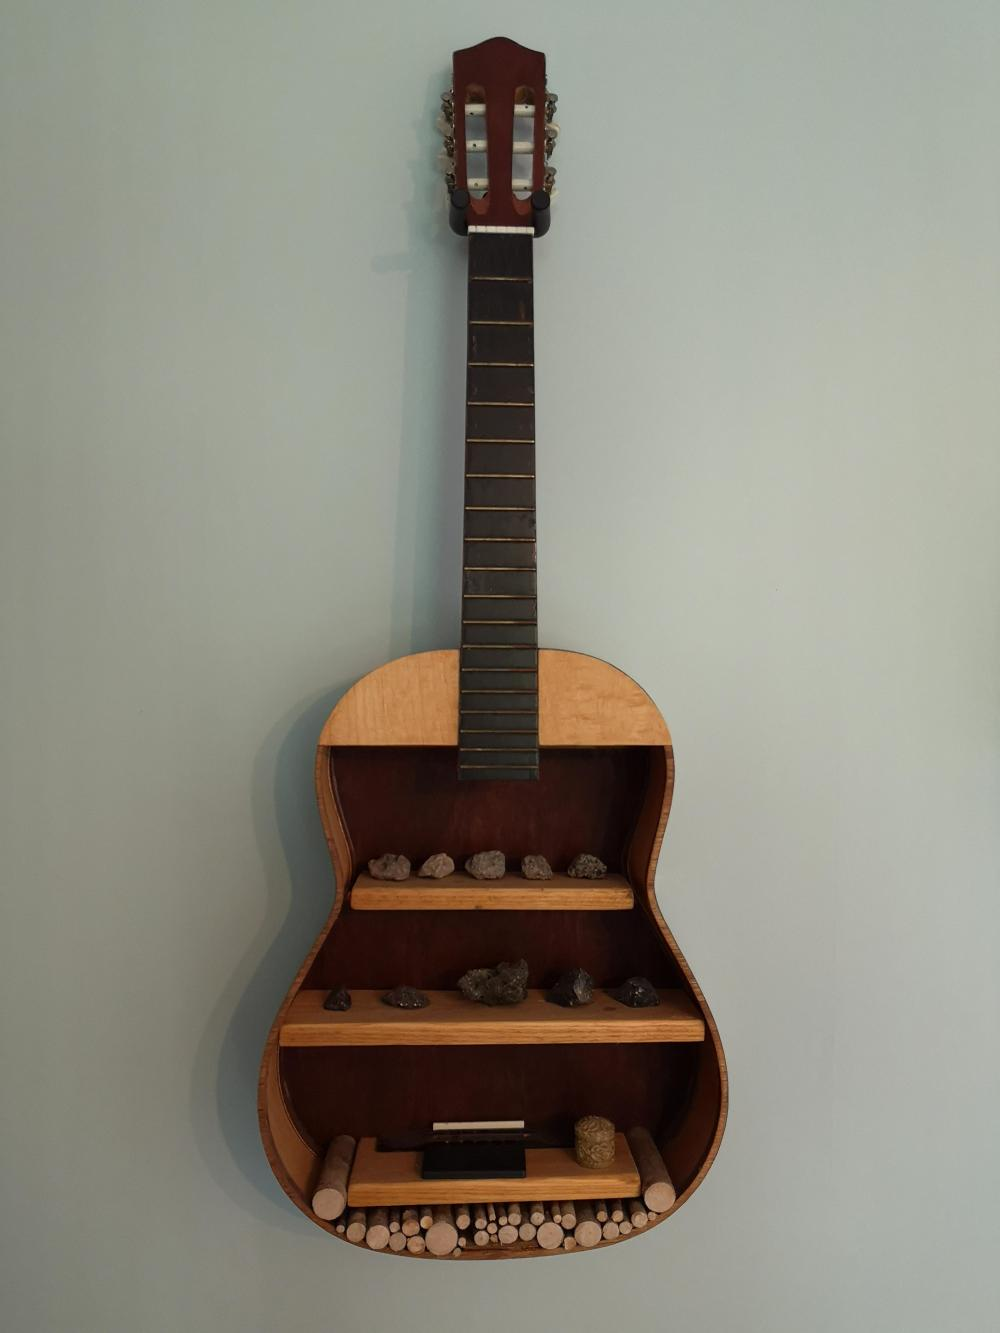 An old guitar full of Rock & Roll